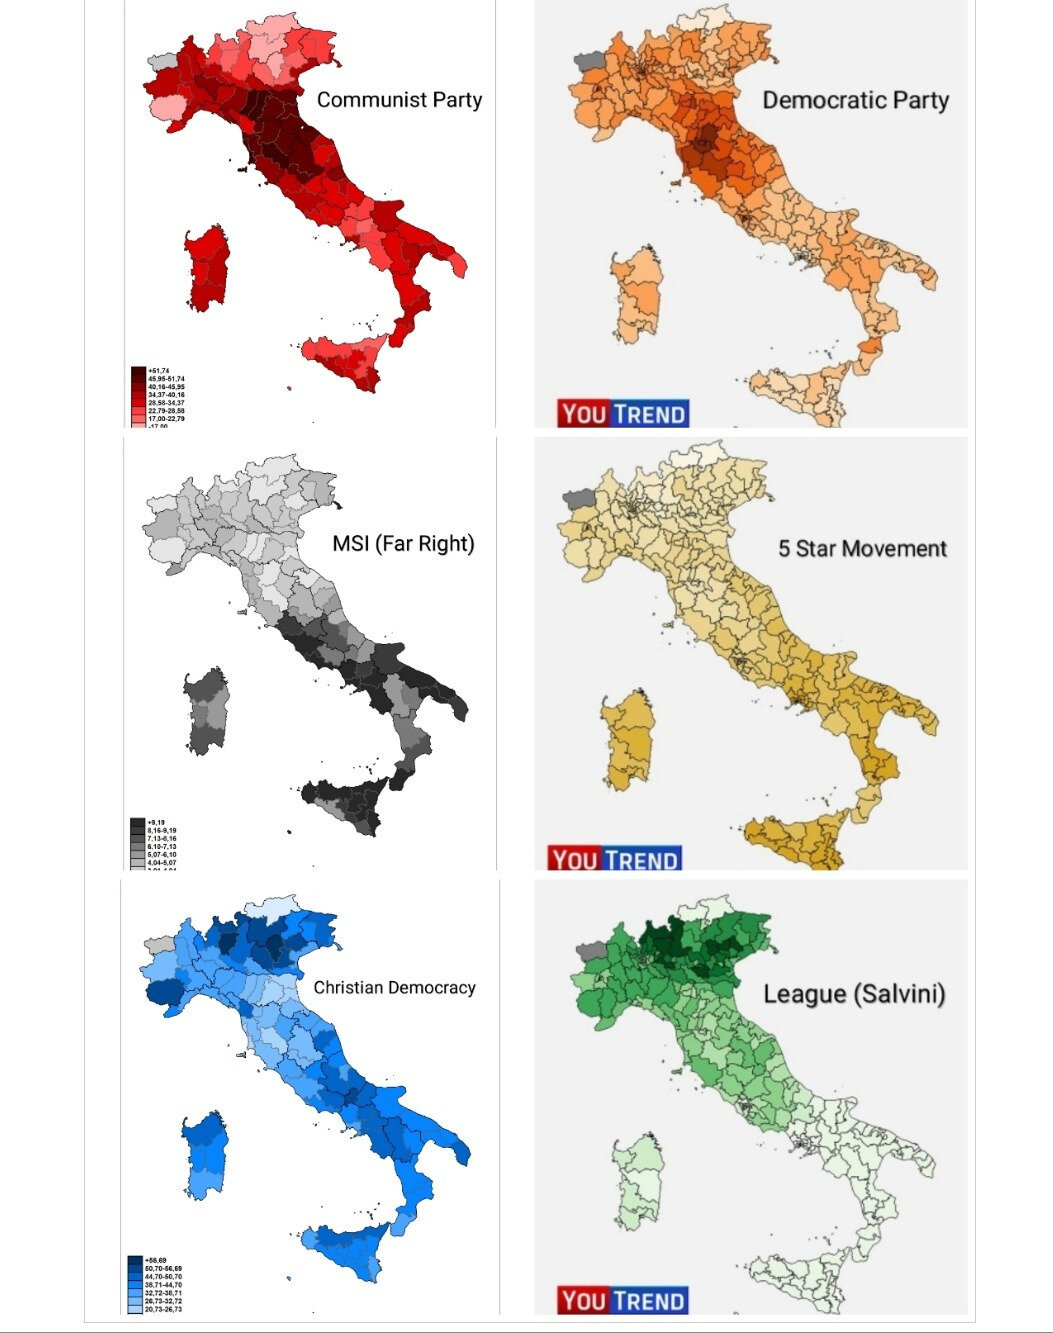 Italy Vote distribution in 1976 elections (left) and 2018 elections (right)